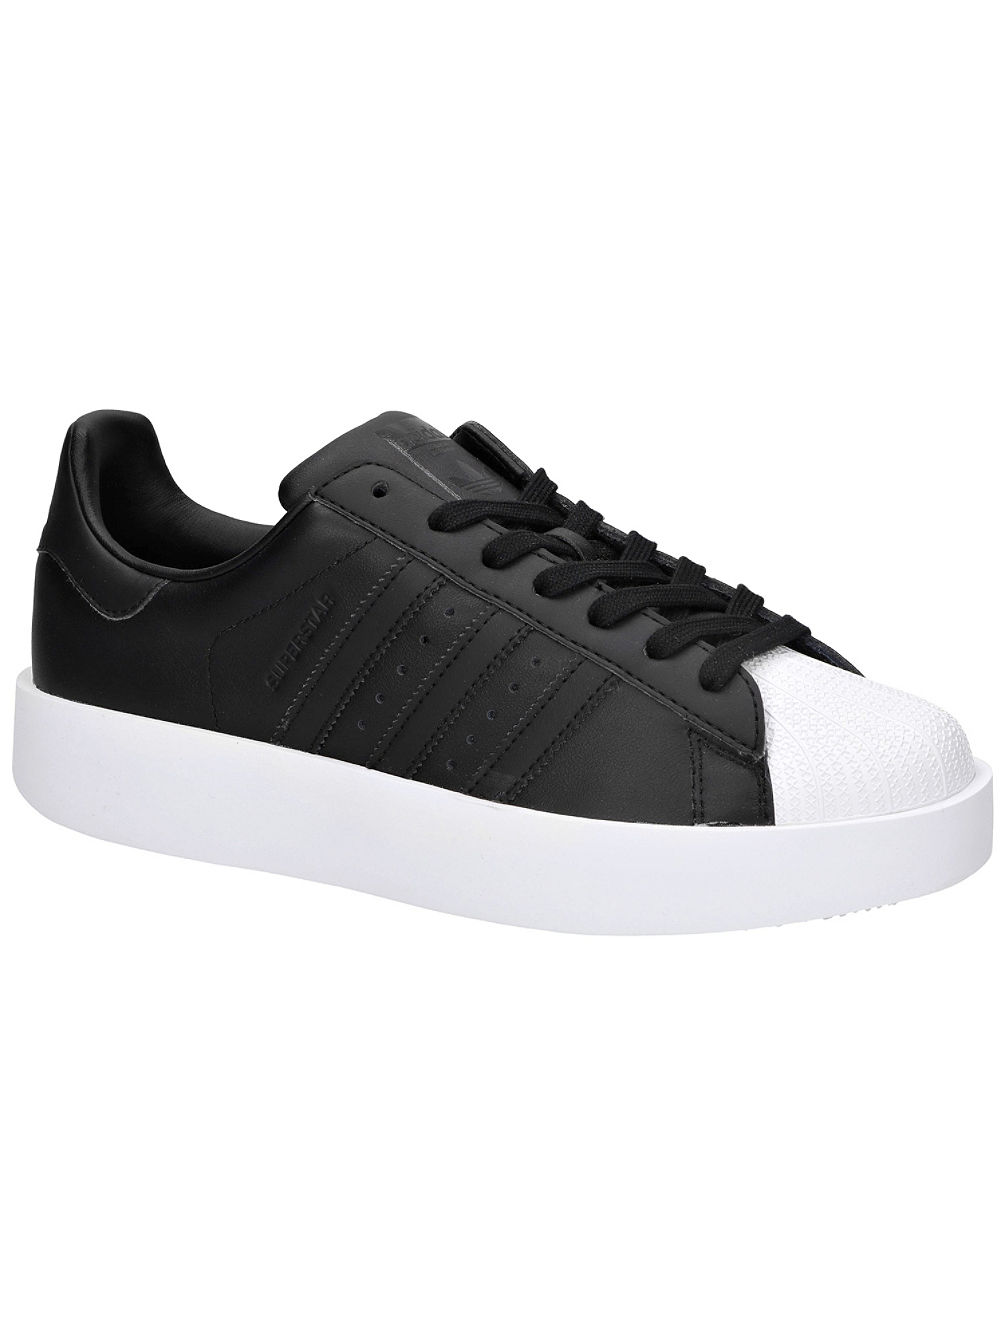 Superstar Bold W Sneakers Frauen